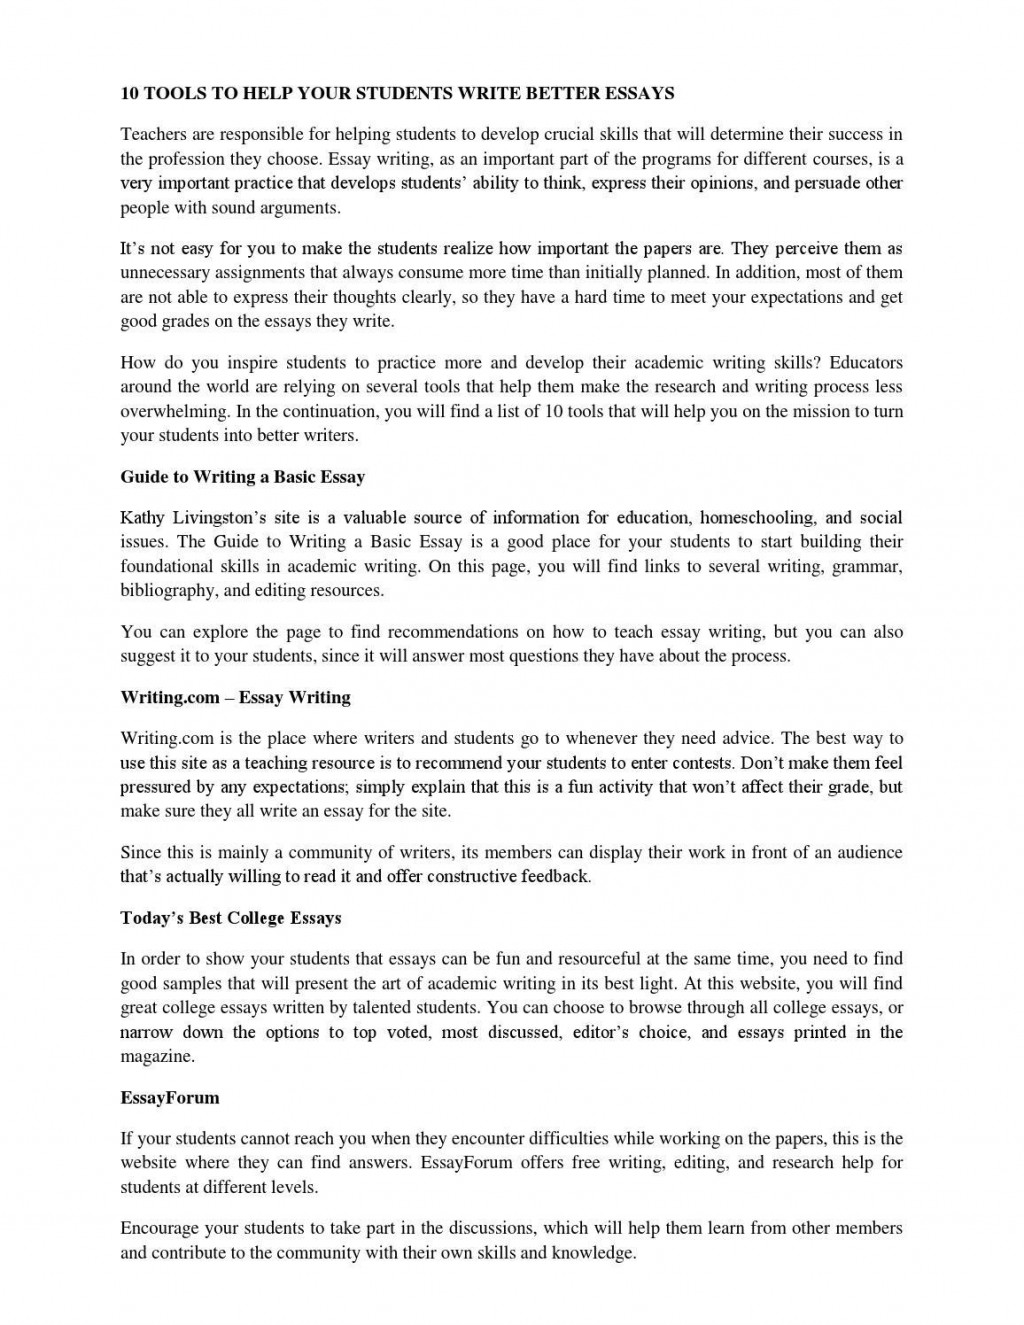 002 Essay Writing Websites Reviews For Students Editing Free Page Research Paper Example That20 Outstanding Best Large